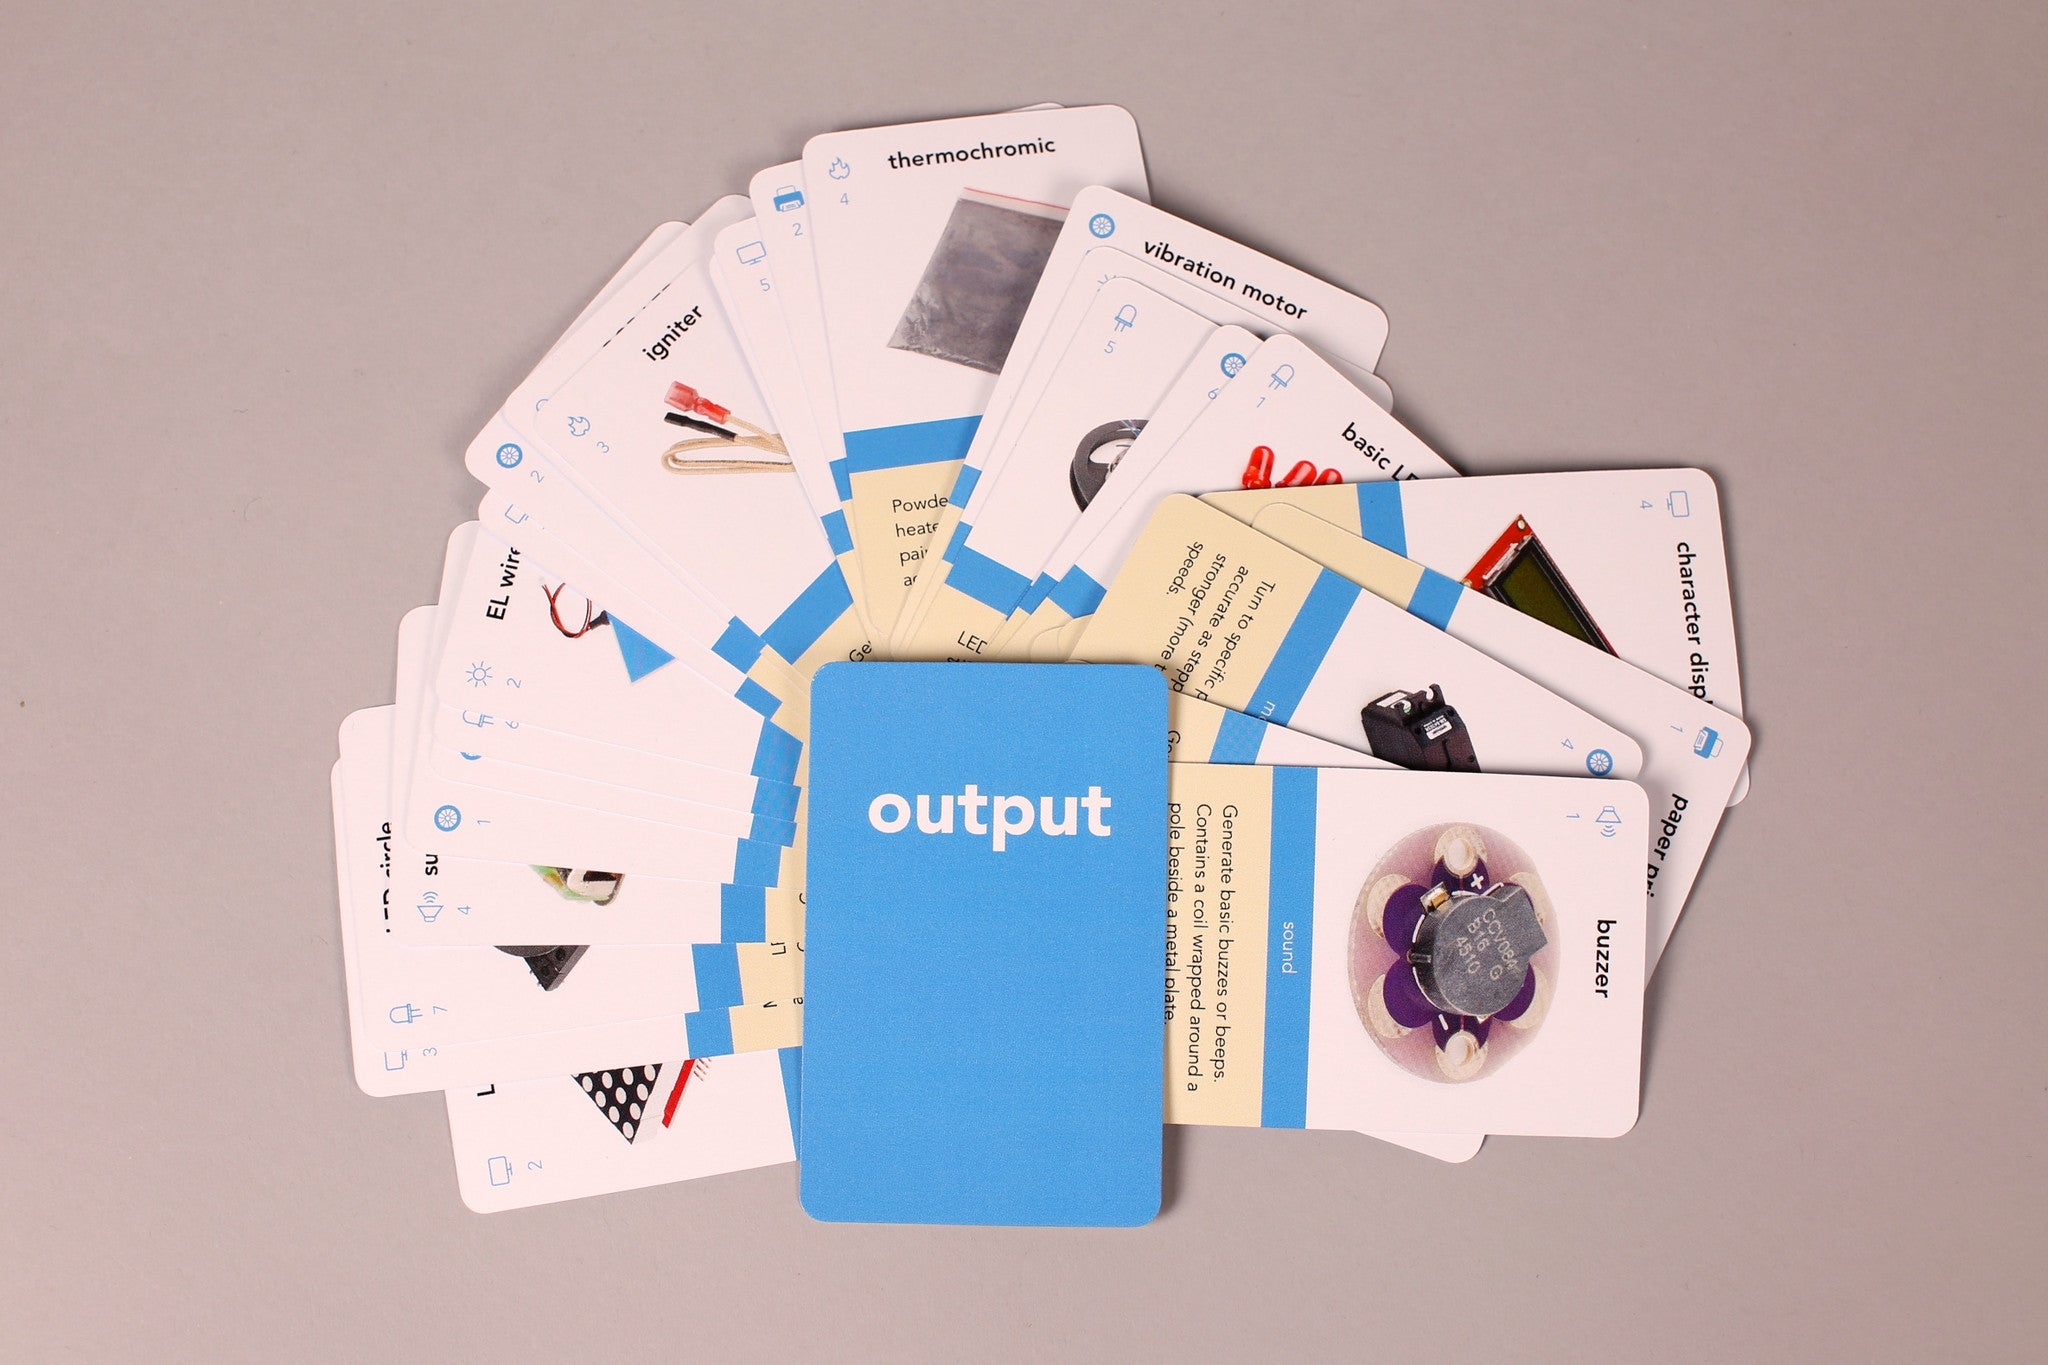 Output cards (35 cards)